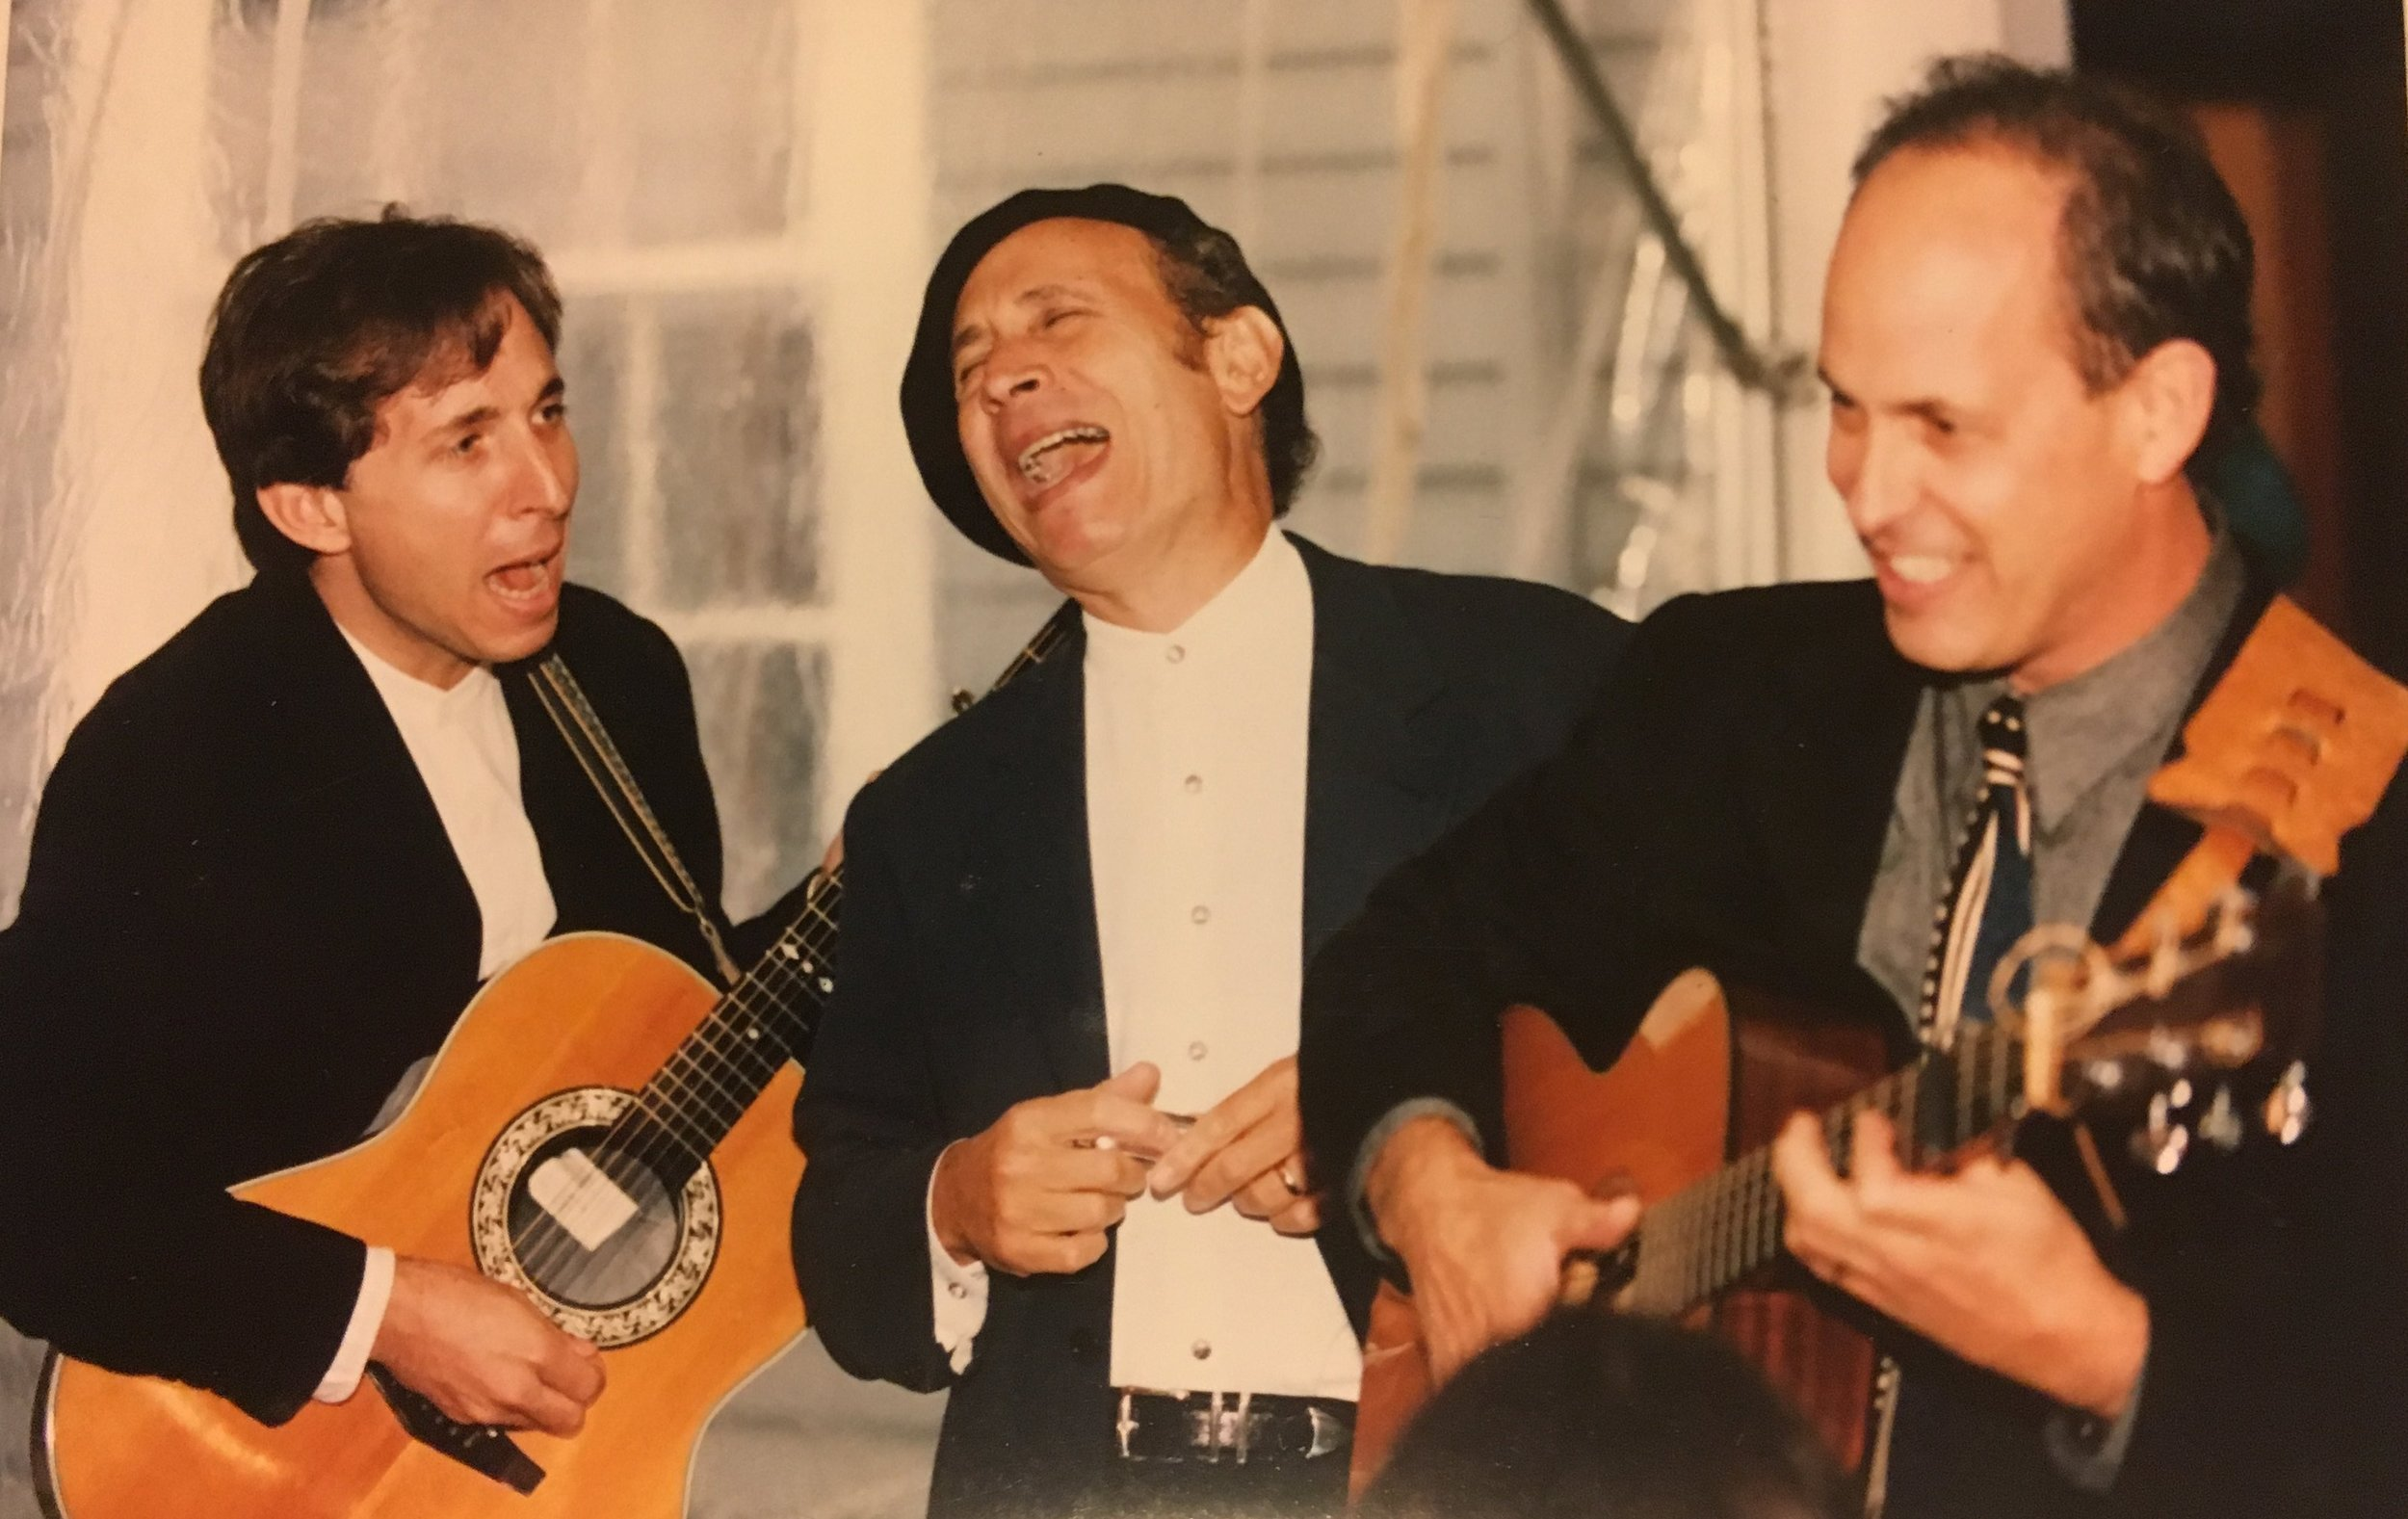 Roger, Dave, and Lev - the Friedman Blues Brothers, 1997